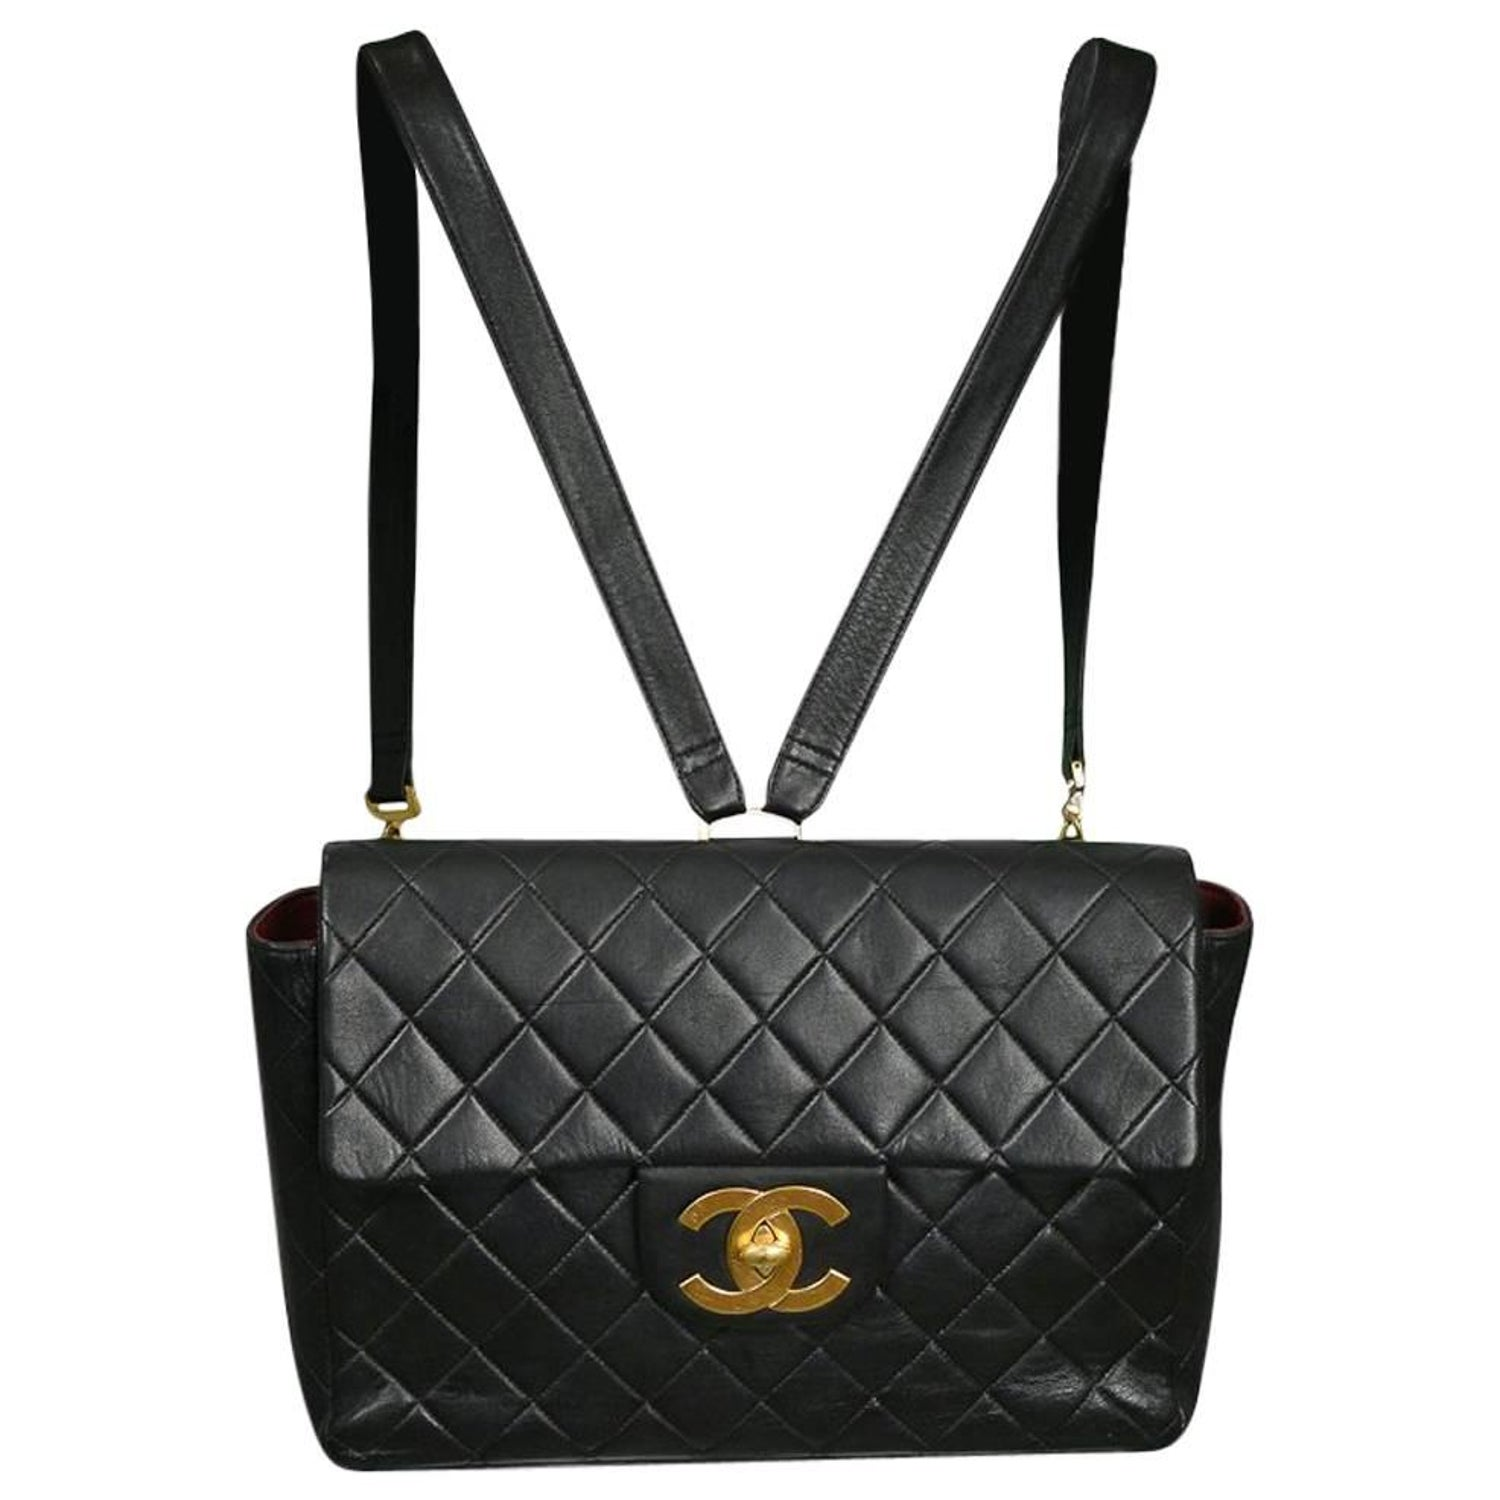 fa017f9330cfcf Unusual Chanel Large Rectangular Black Leather Quilted Backpack w CC Logo  at 1stdibs